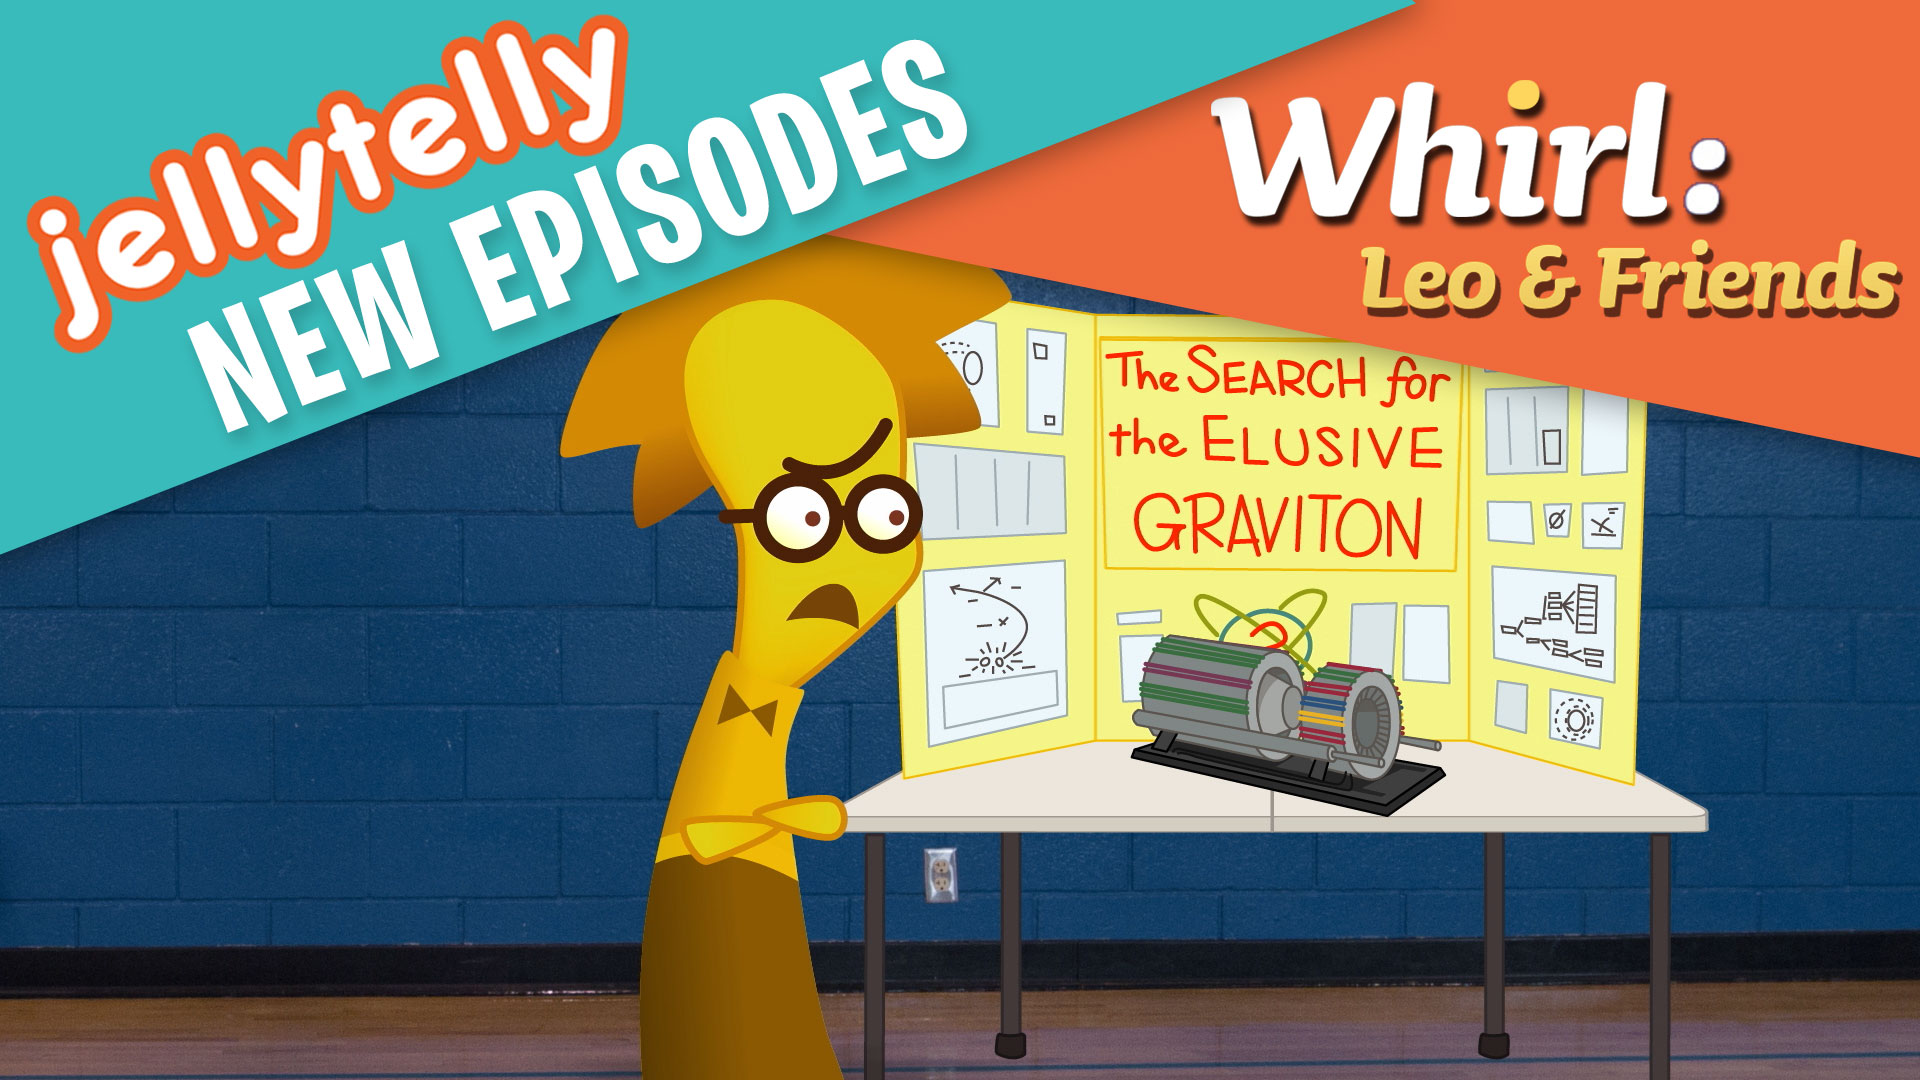 Whirl leo v4 ep02 featured preview image